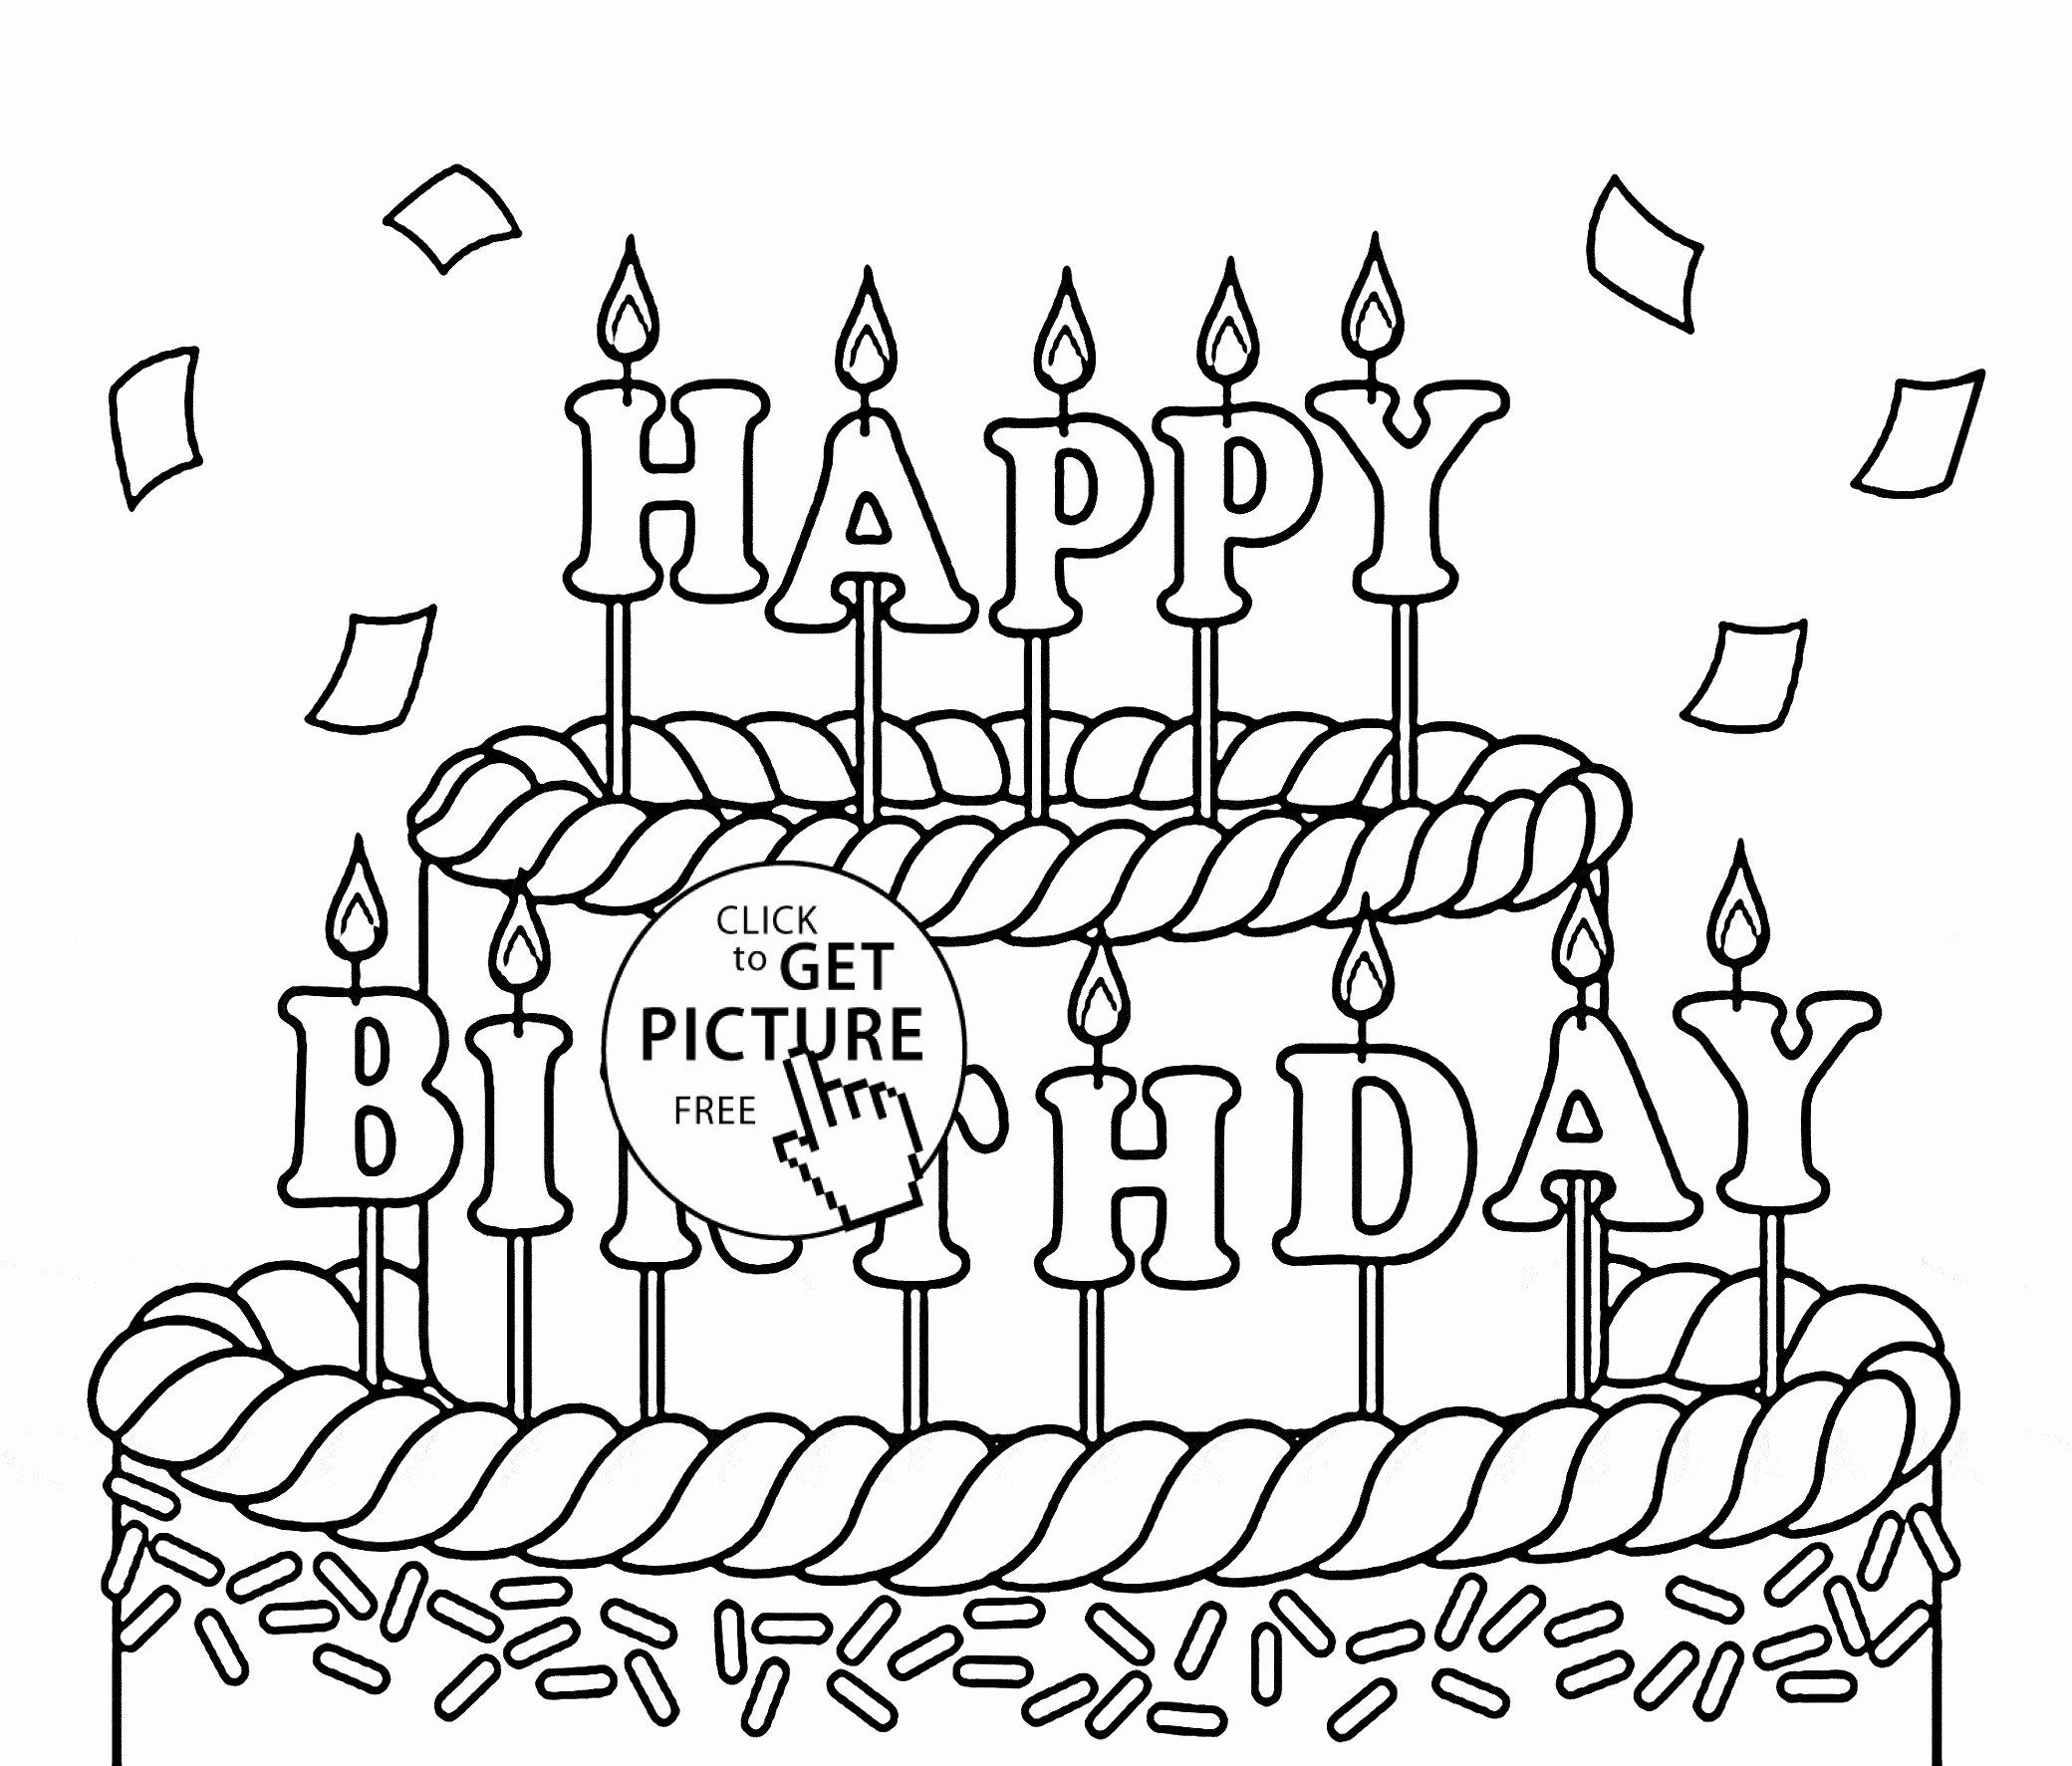 happy birthday coloring letters happy birthday coloring pages to download and print for free birthday happy letters coloring